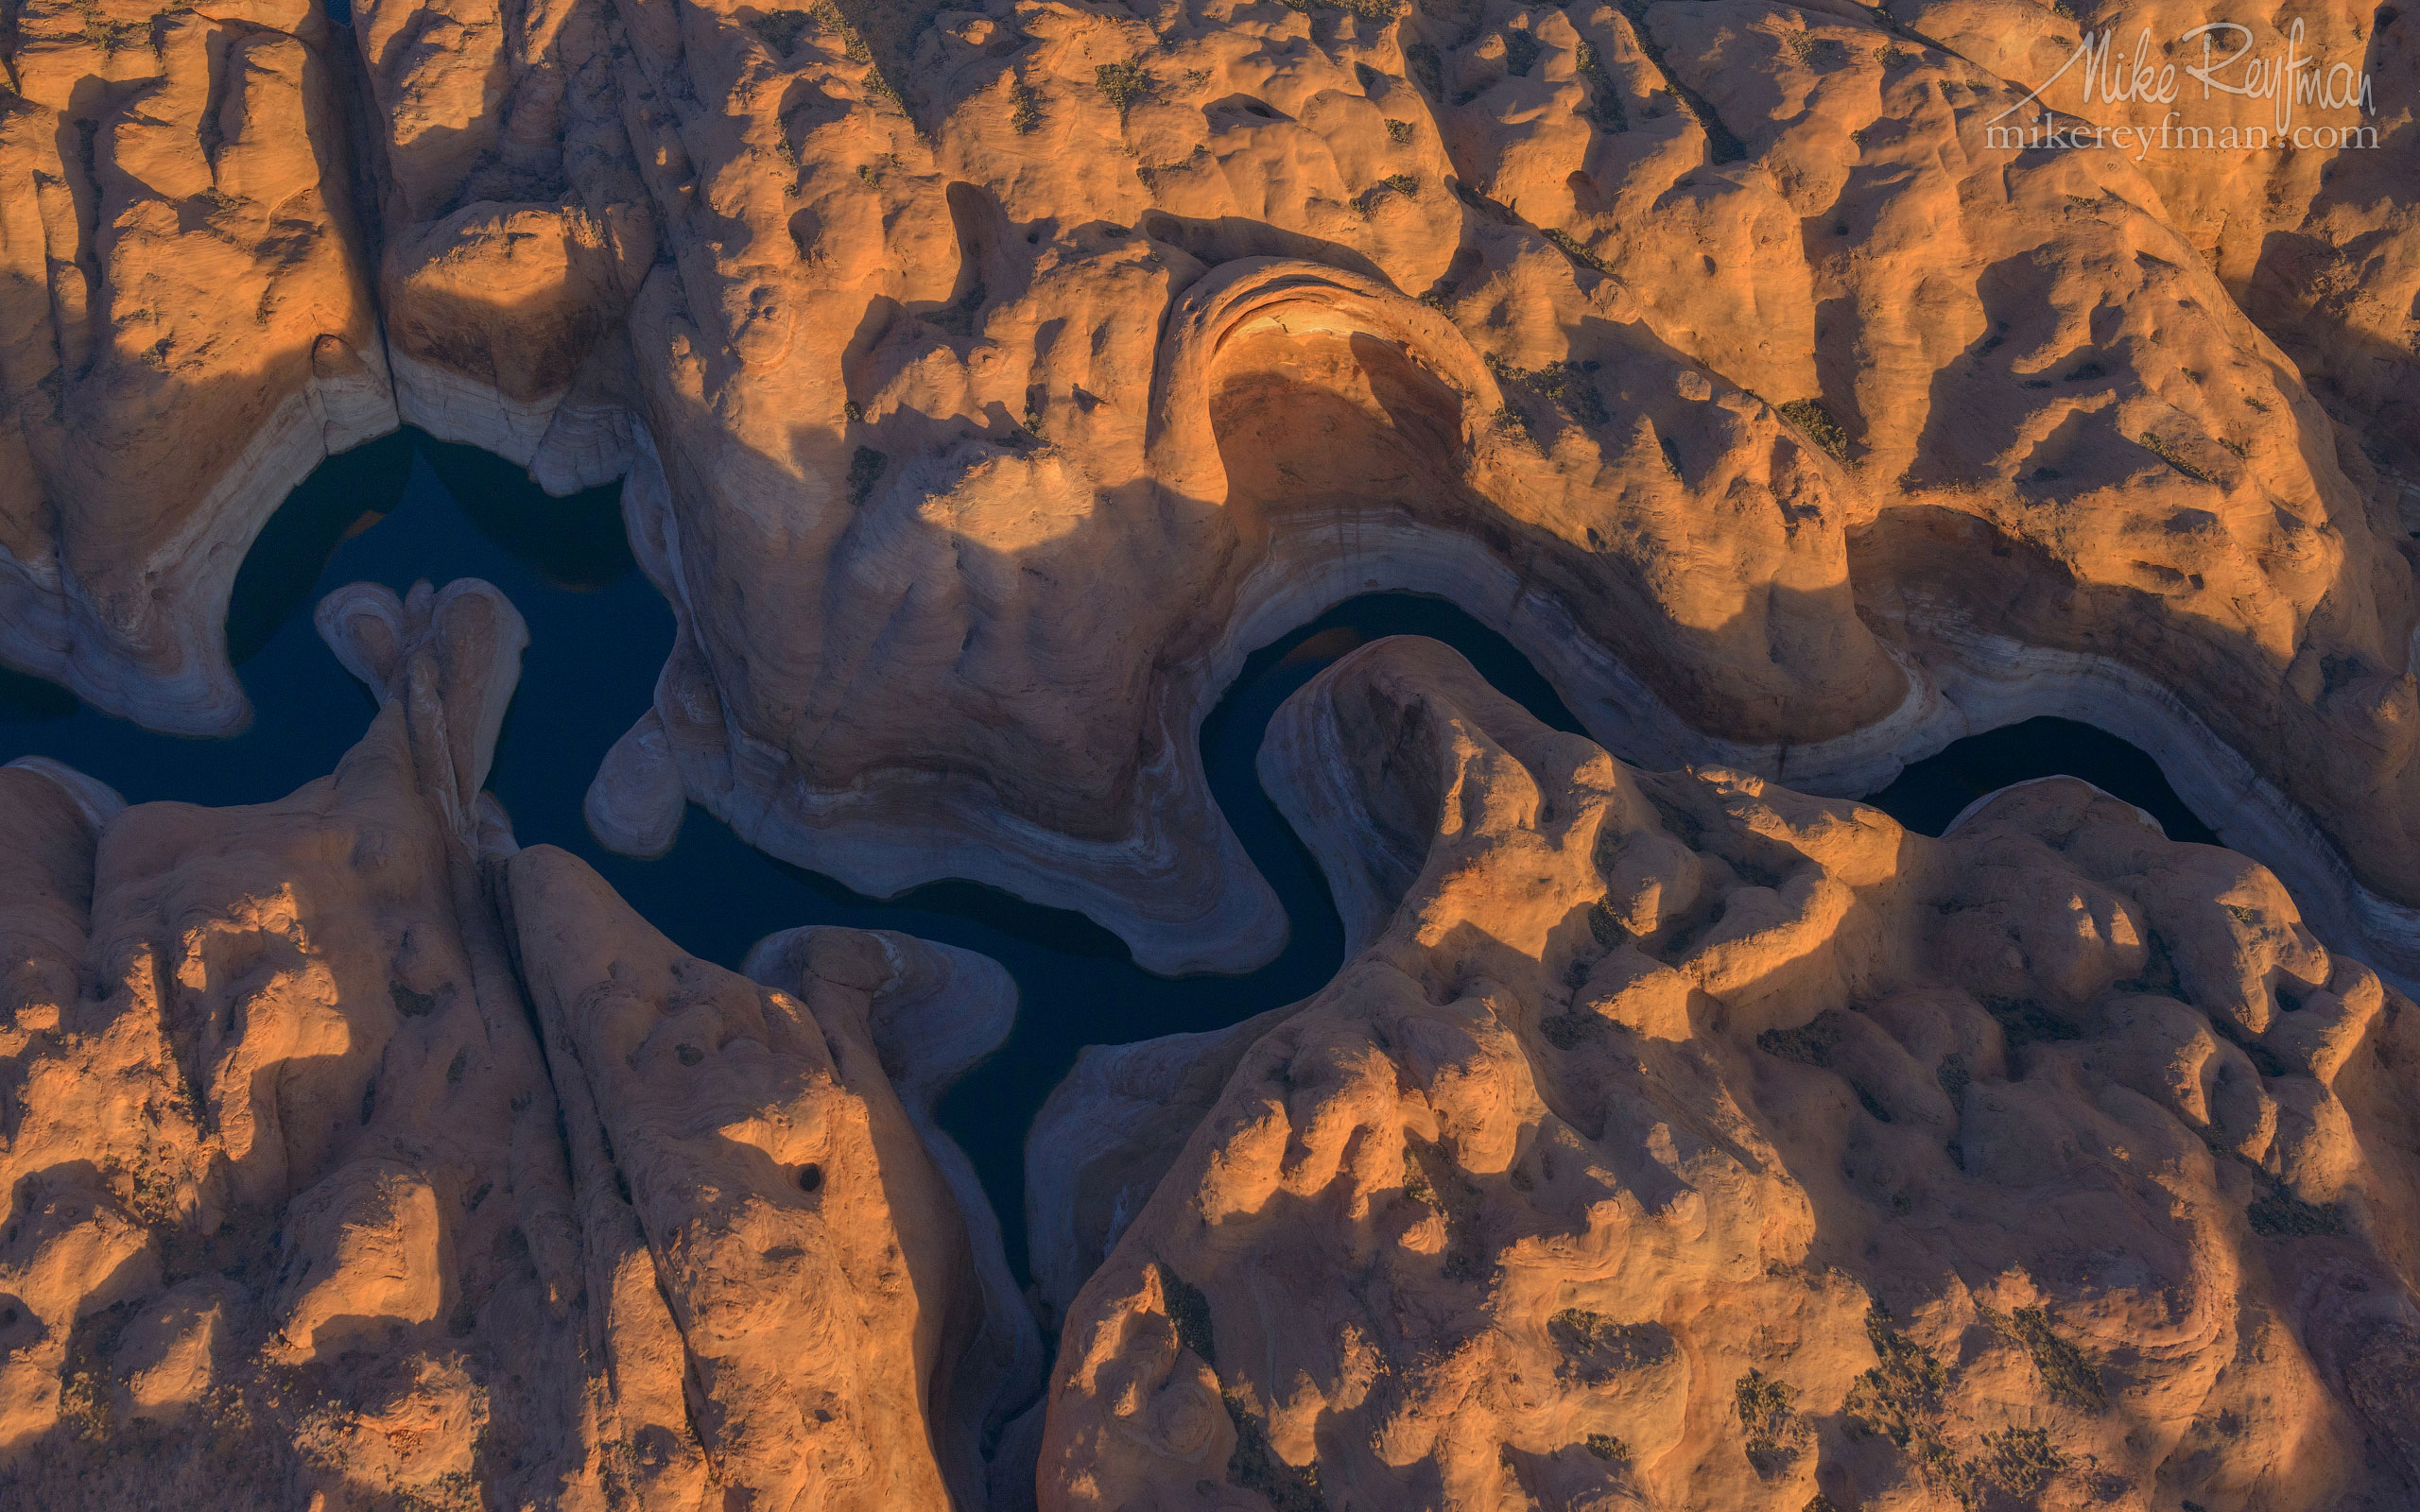 Anasazi Canyon Abstracts. Anasazi Canyon, Lake Powell, Glen Canyon NRA, Utah/Arizona, US. Aerial. 087-LP3_D8C9475.jpg - Lake Powell, Glen Canyon NAR. Colorado and Sun Juan Rivers. Utah/Arizona, USA  - Mike Reyfman Photography